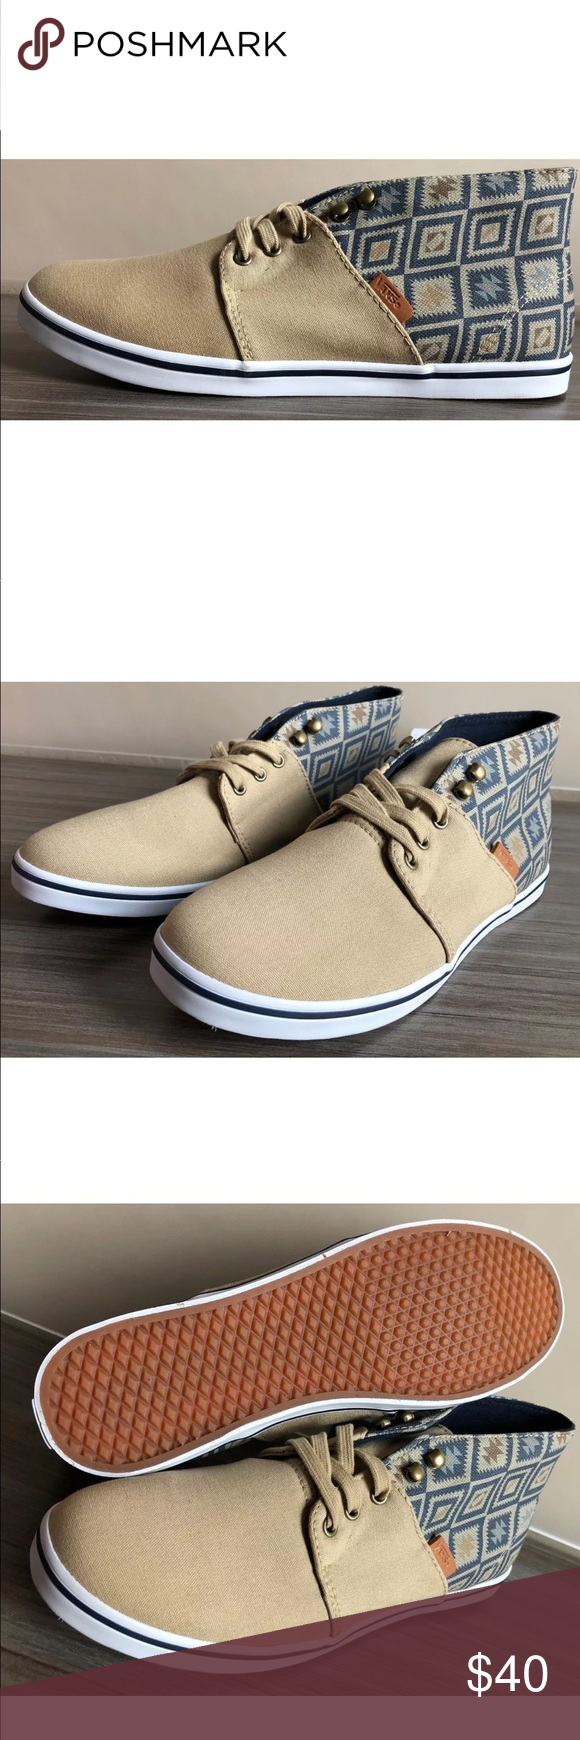 ee5422fbb8 Vans Women s Camryn Slim Native Chukka Shoes NEW AUTHENTIC Vans Camryn Slim  (Native) Shoes SIZE WOMEN S 10 US COLOR  Taose Taupe Ombre Blue Vans Shoes  ...